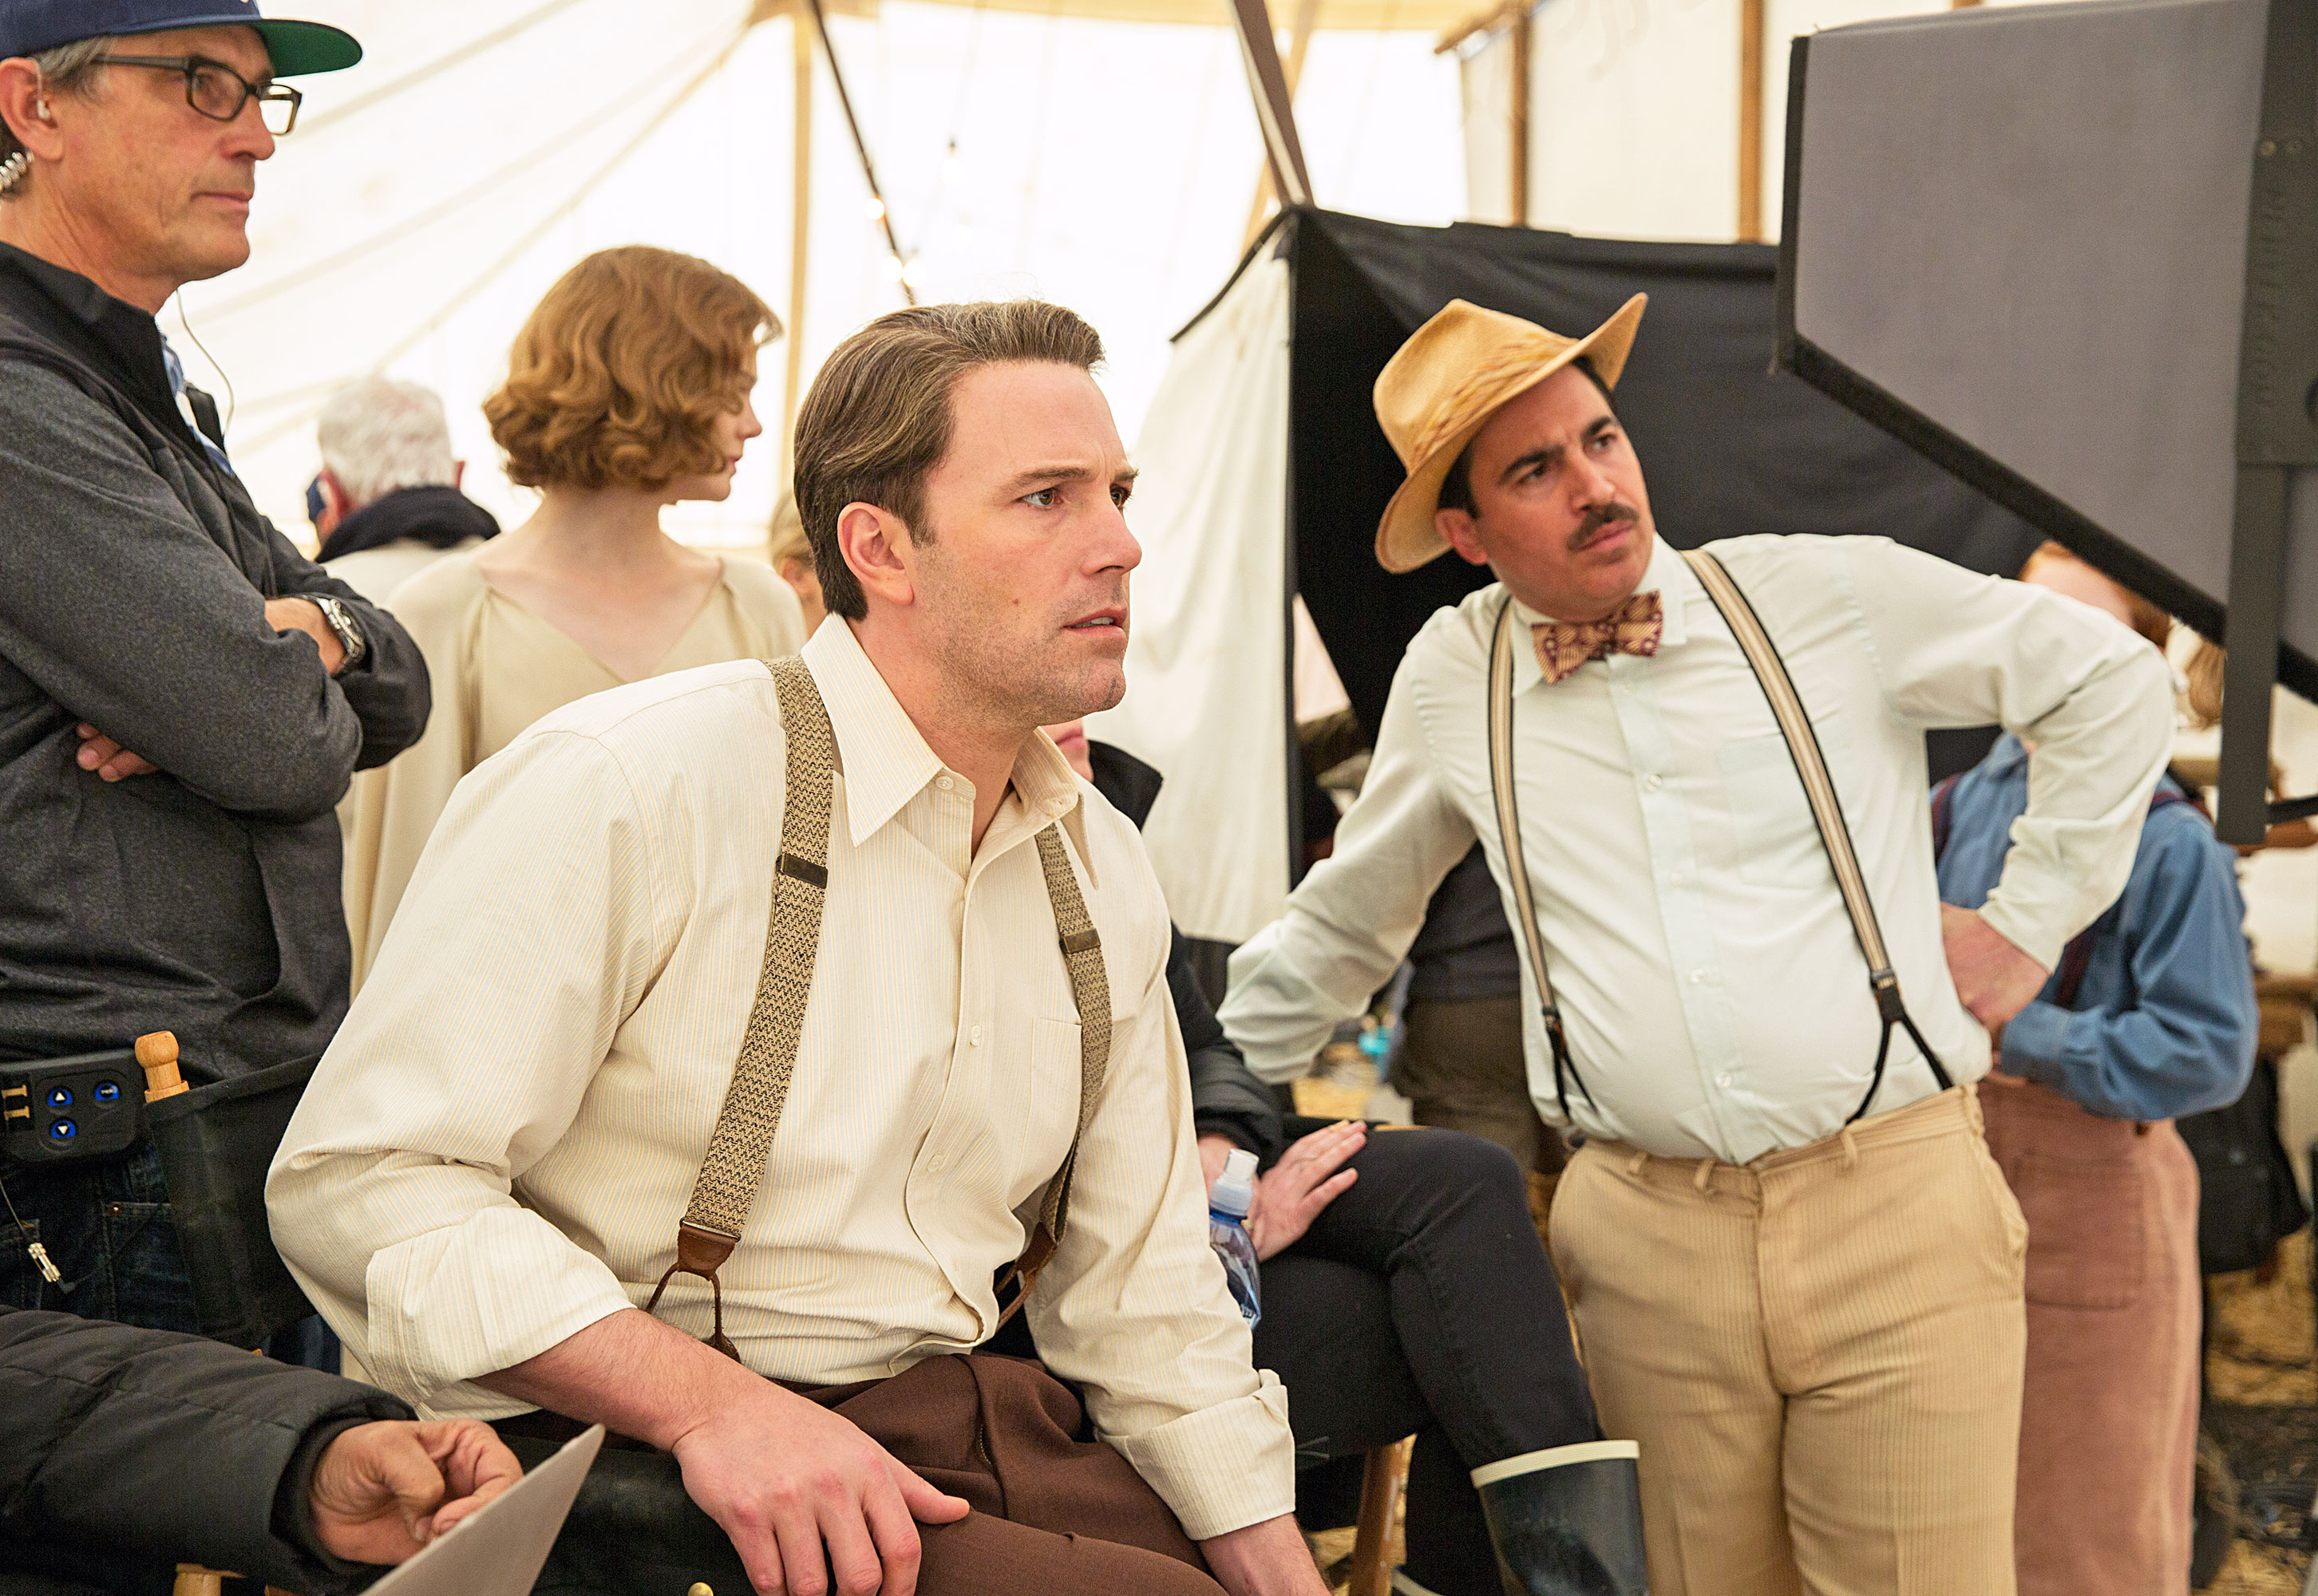 Writer/Director Ben Affleck and Chris Messina on the set of 'Live by Night' casey movie film